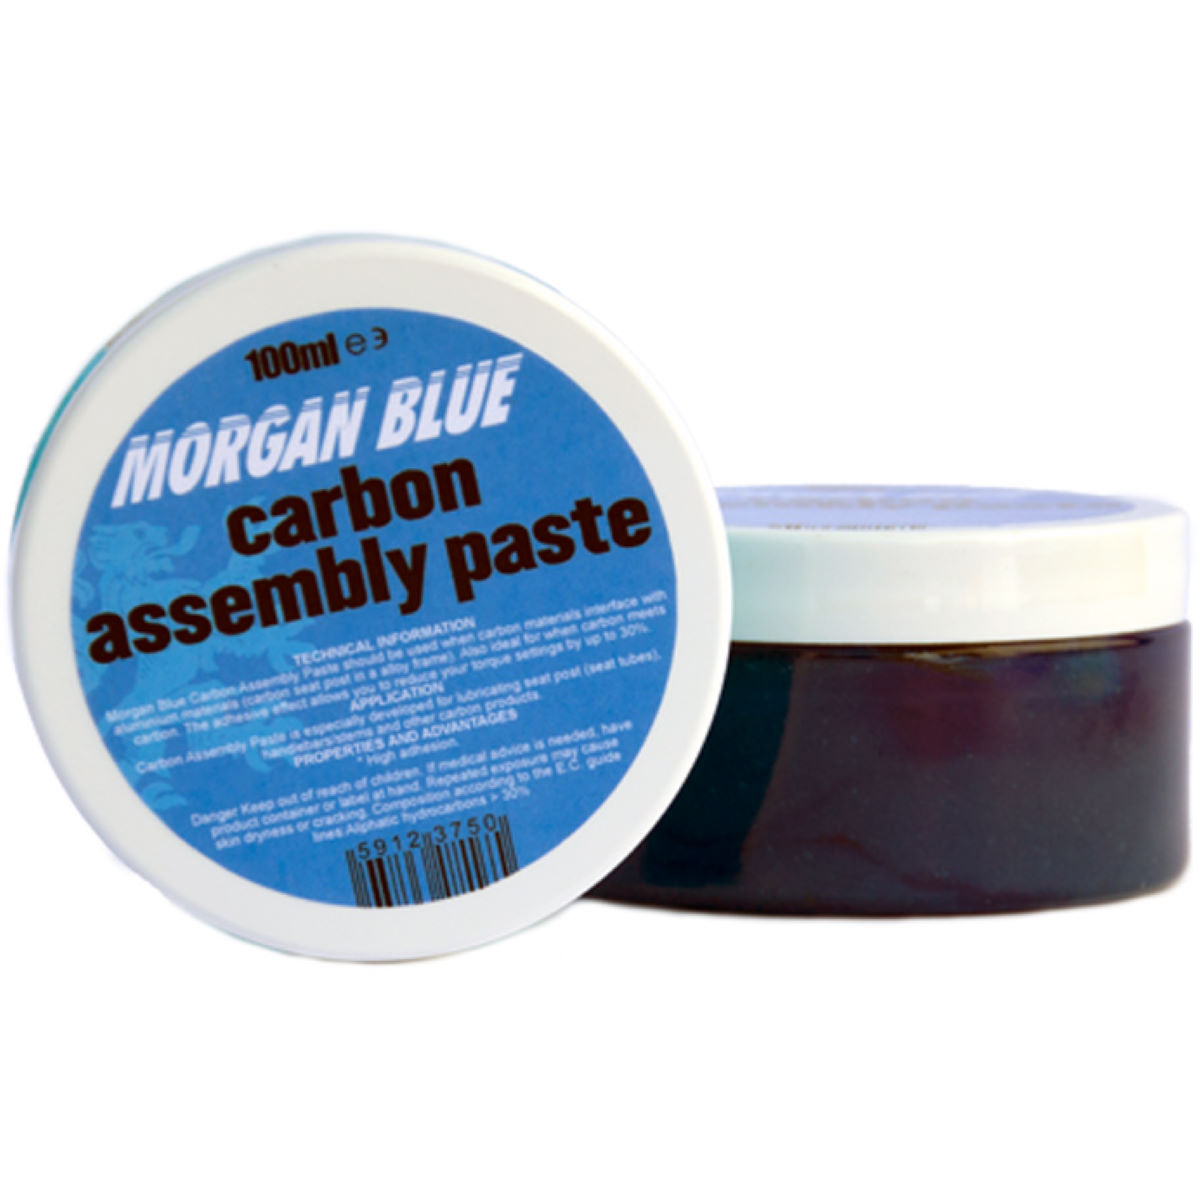 Morgan Blue Carbon Assembly Paste - Grasas